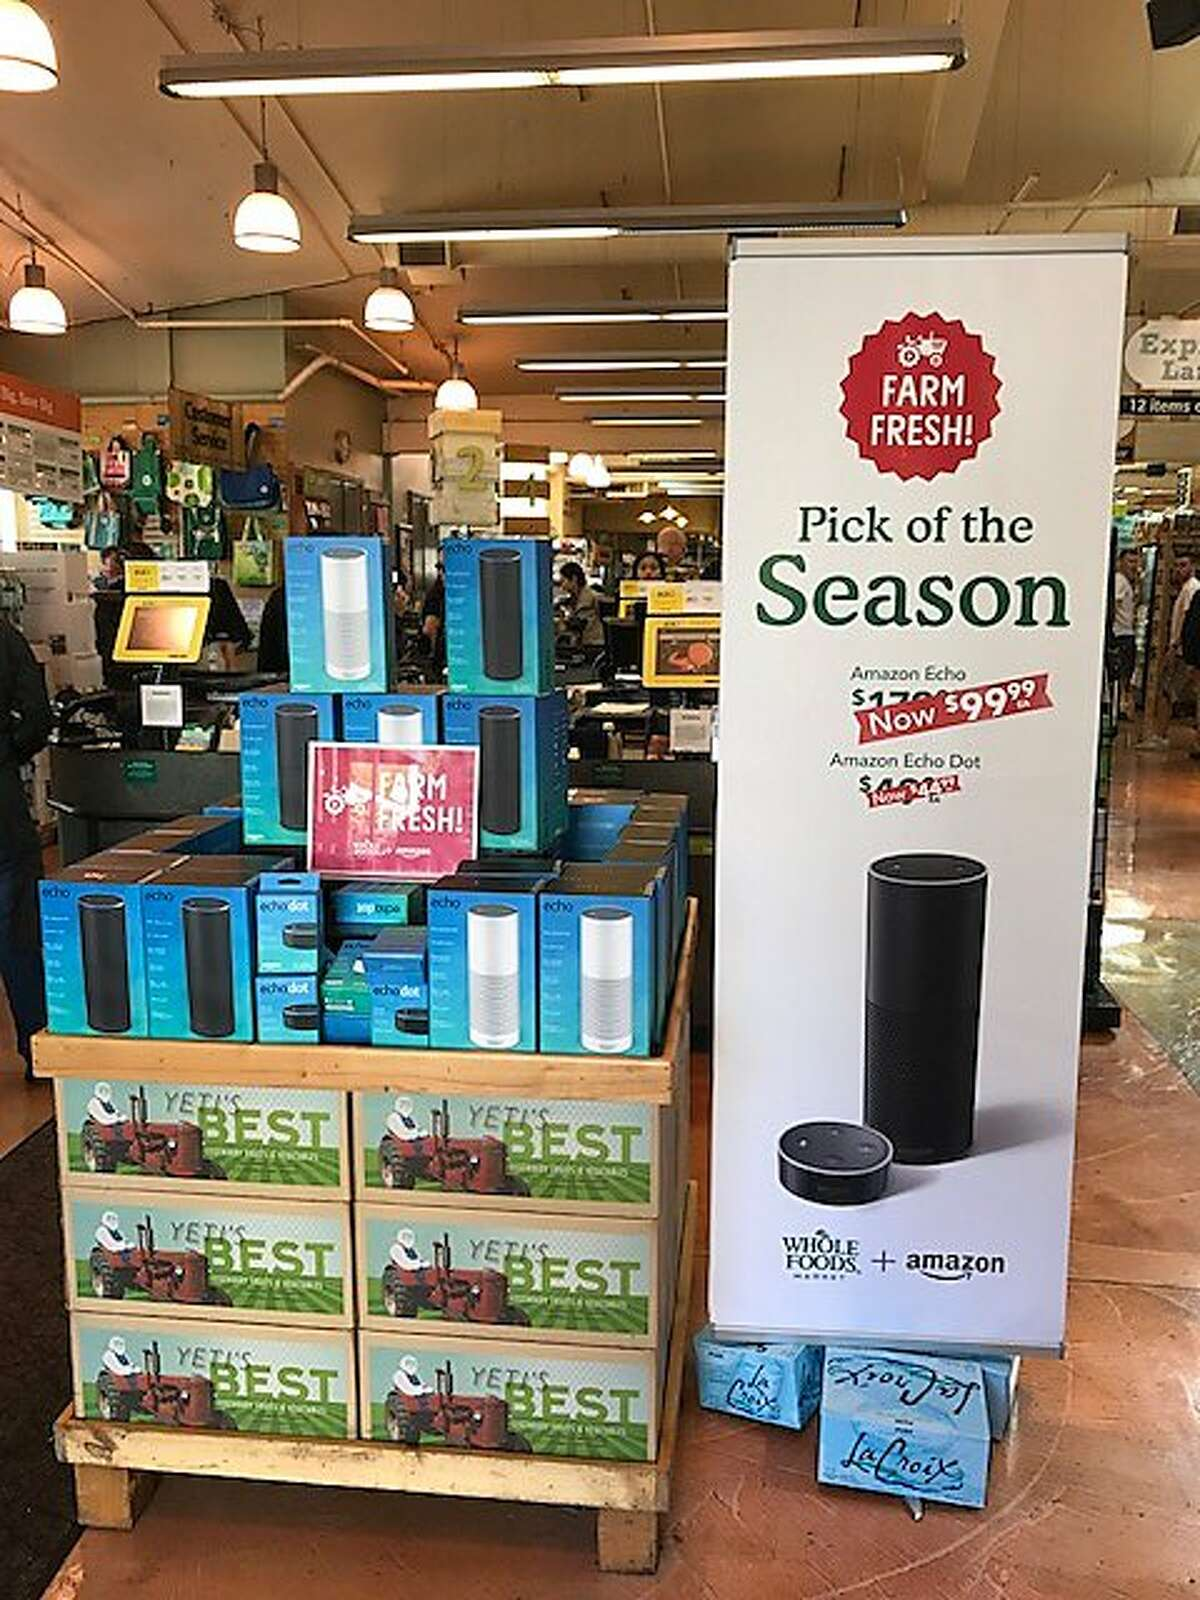 The Amazon Echo for sale at a Whole Foods Market in San Francisco on the first full day of Amazon ownership, Monday, August 28, 2017.